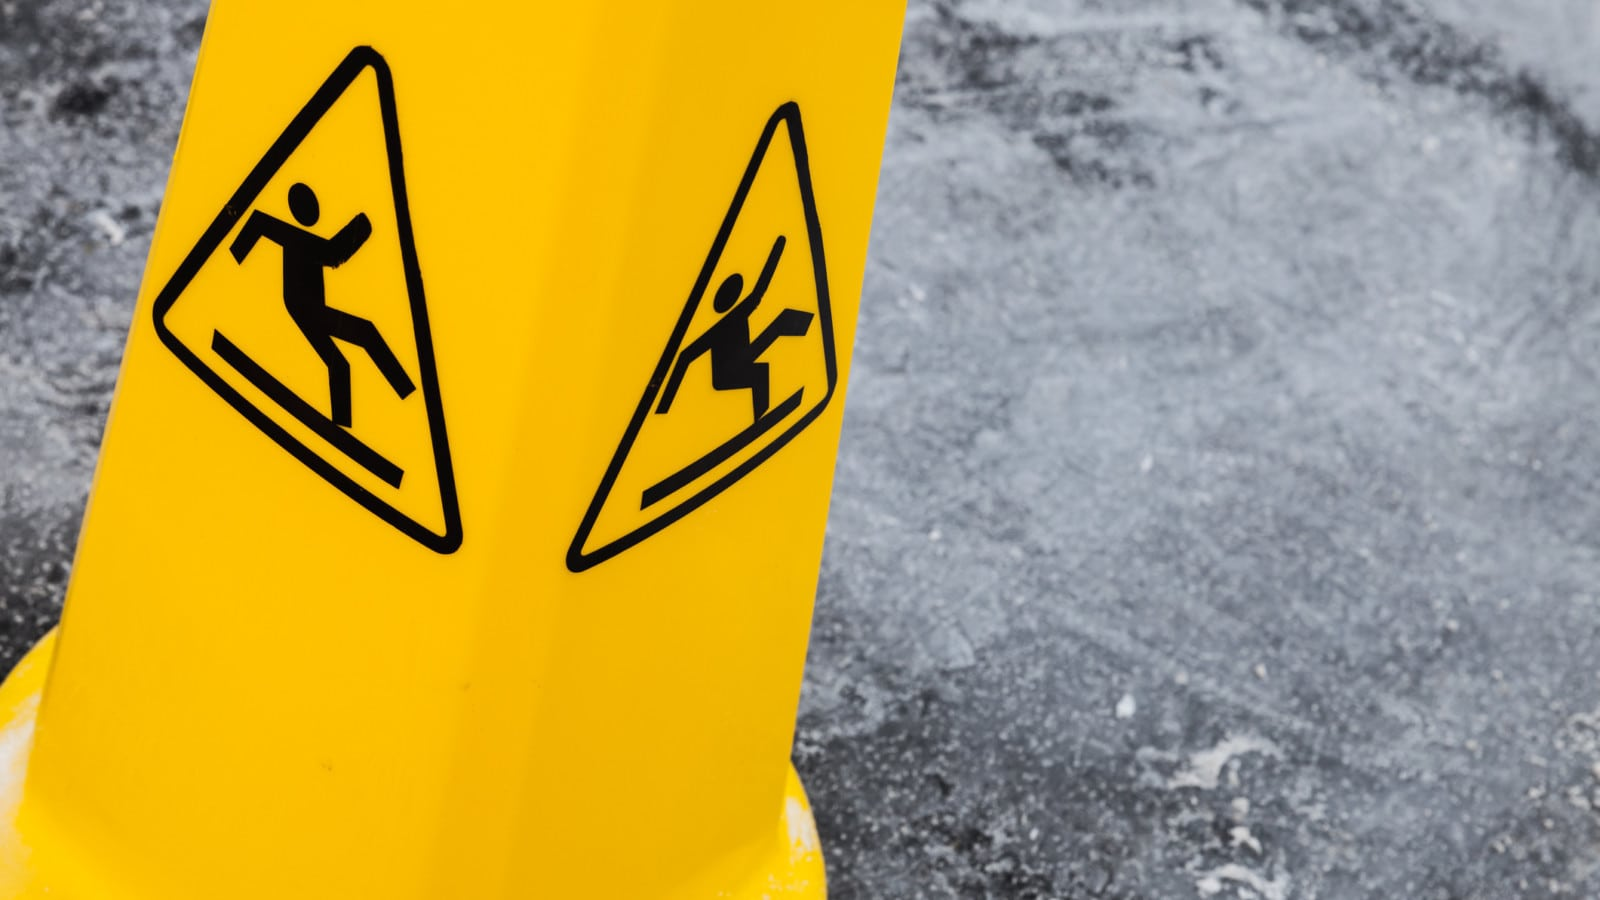 Caution Sign Wet Floor Stock Photo